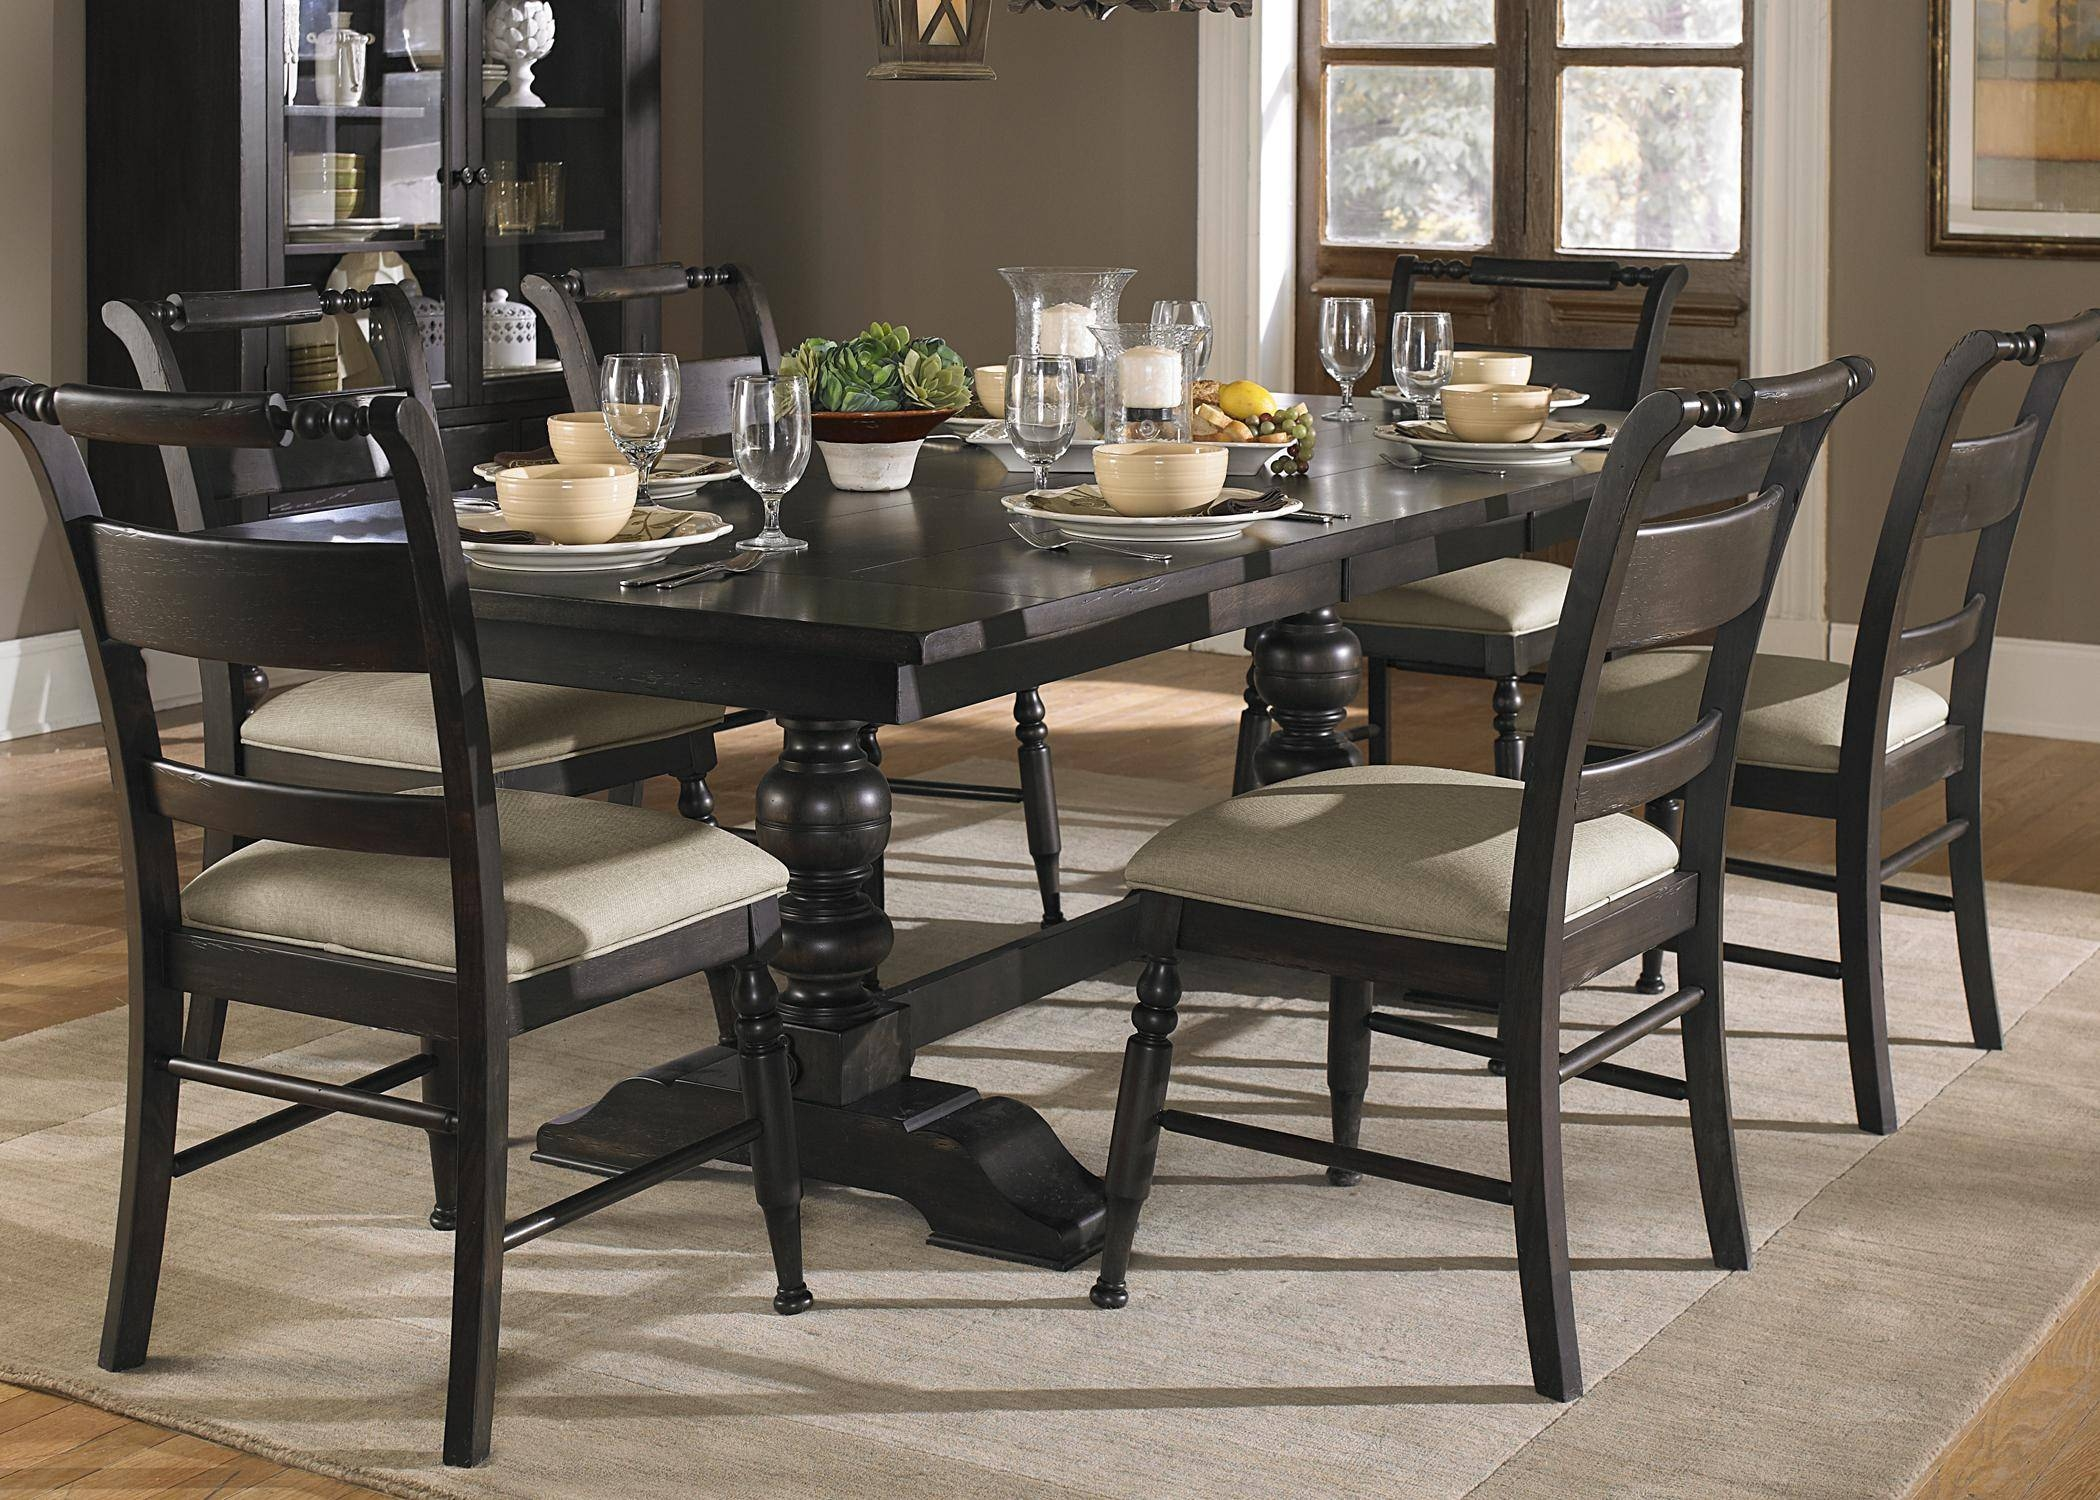 Black Dining Room Set Large Table Chair Sets Dressers Sofa Console For Recent Dining Room Table Chairs And Sideboards (View 6 of 15)